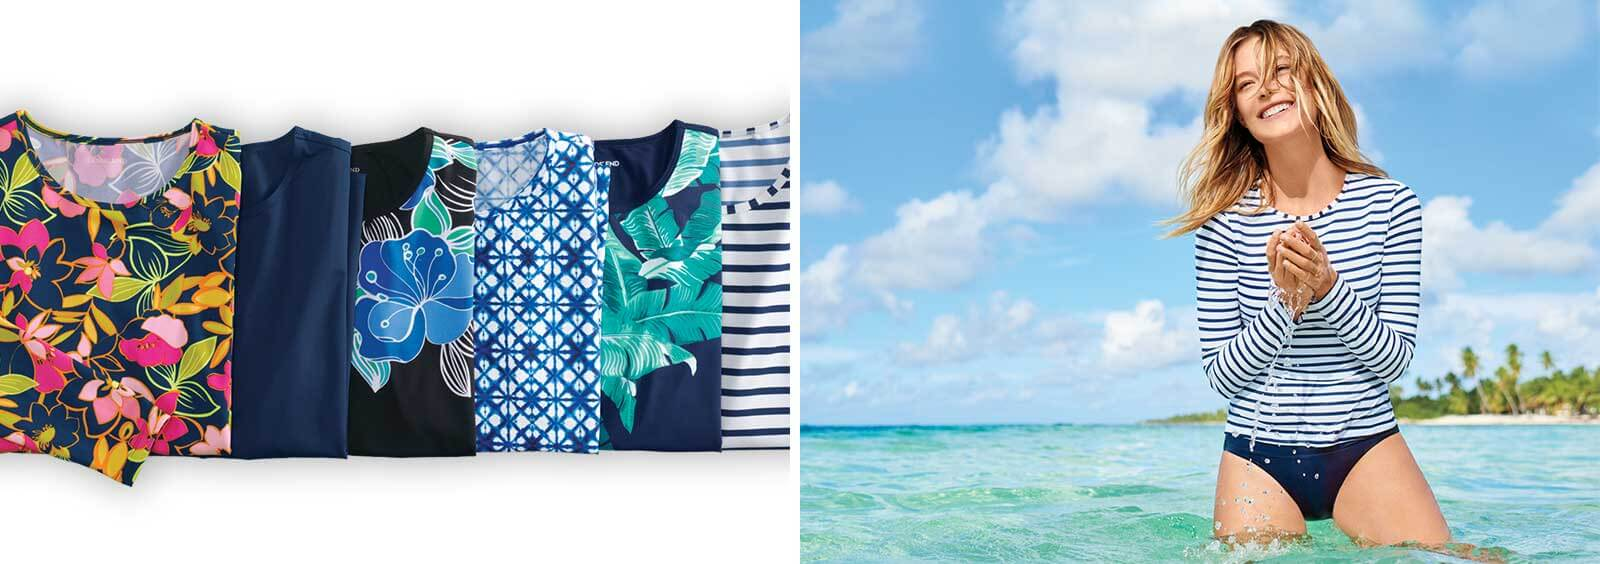 The Best Rash Guards for Vacation